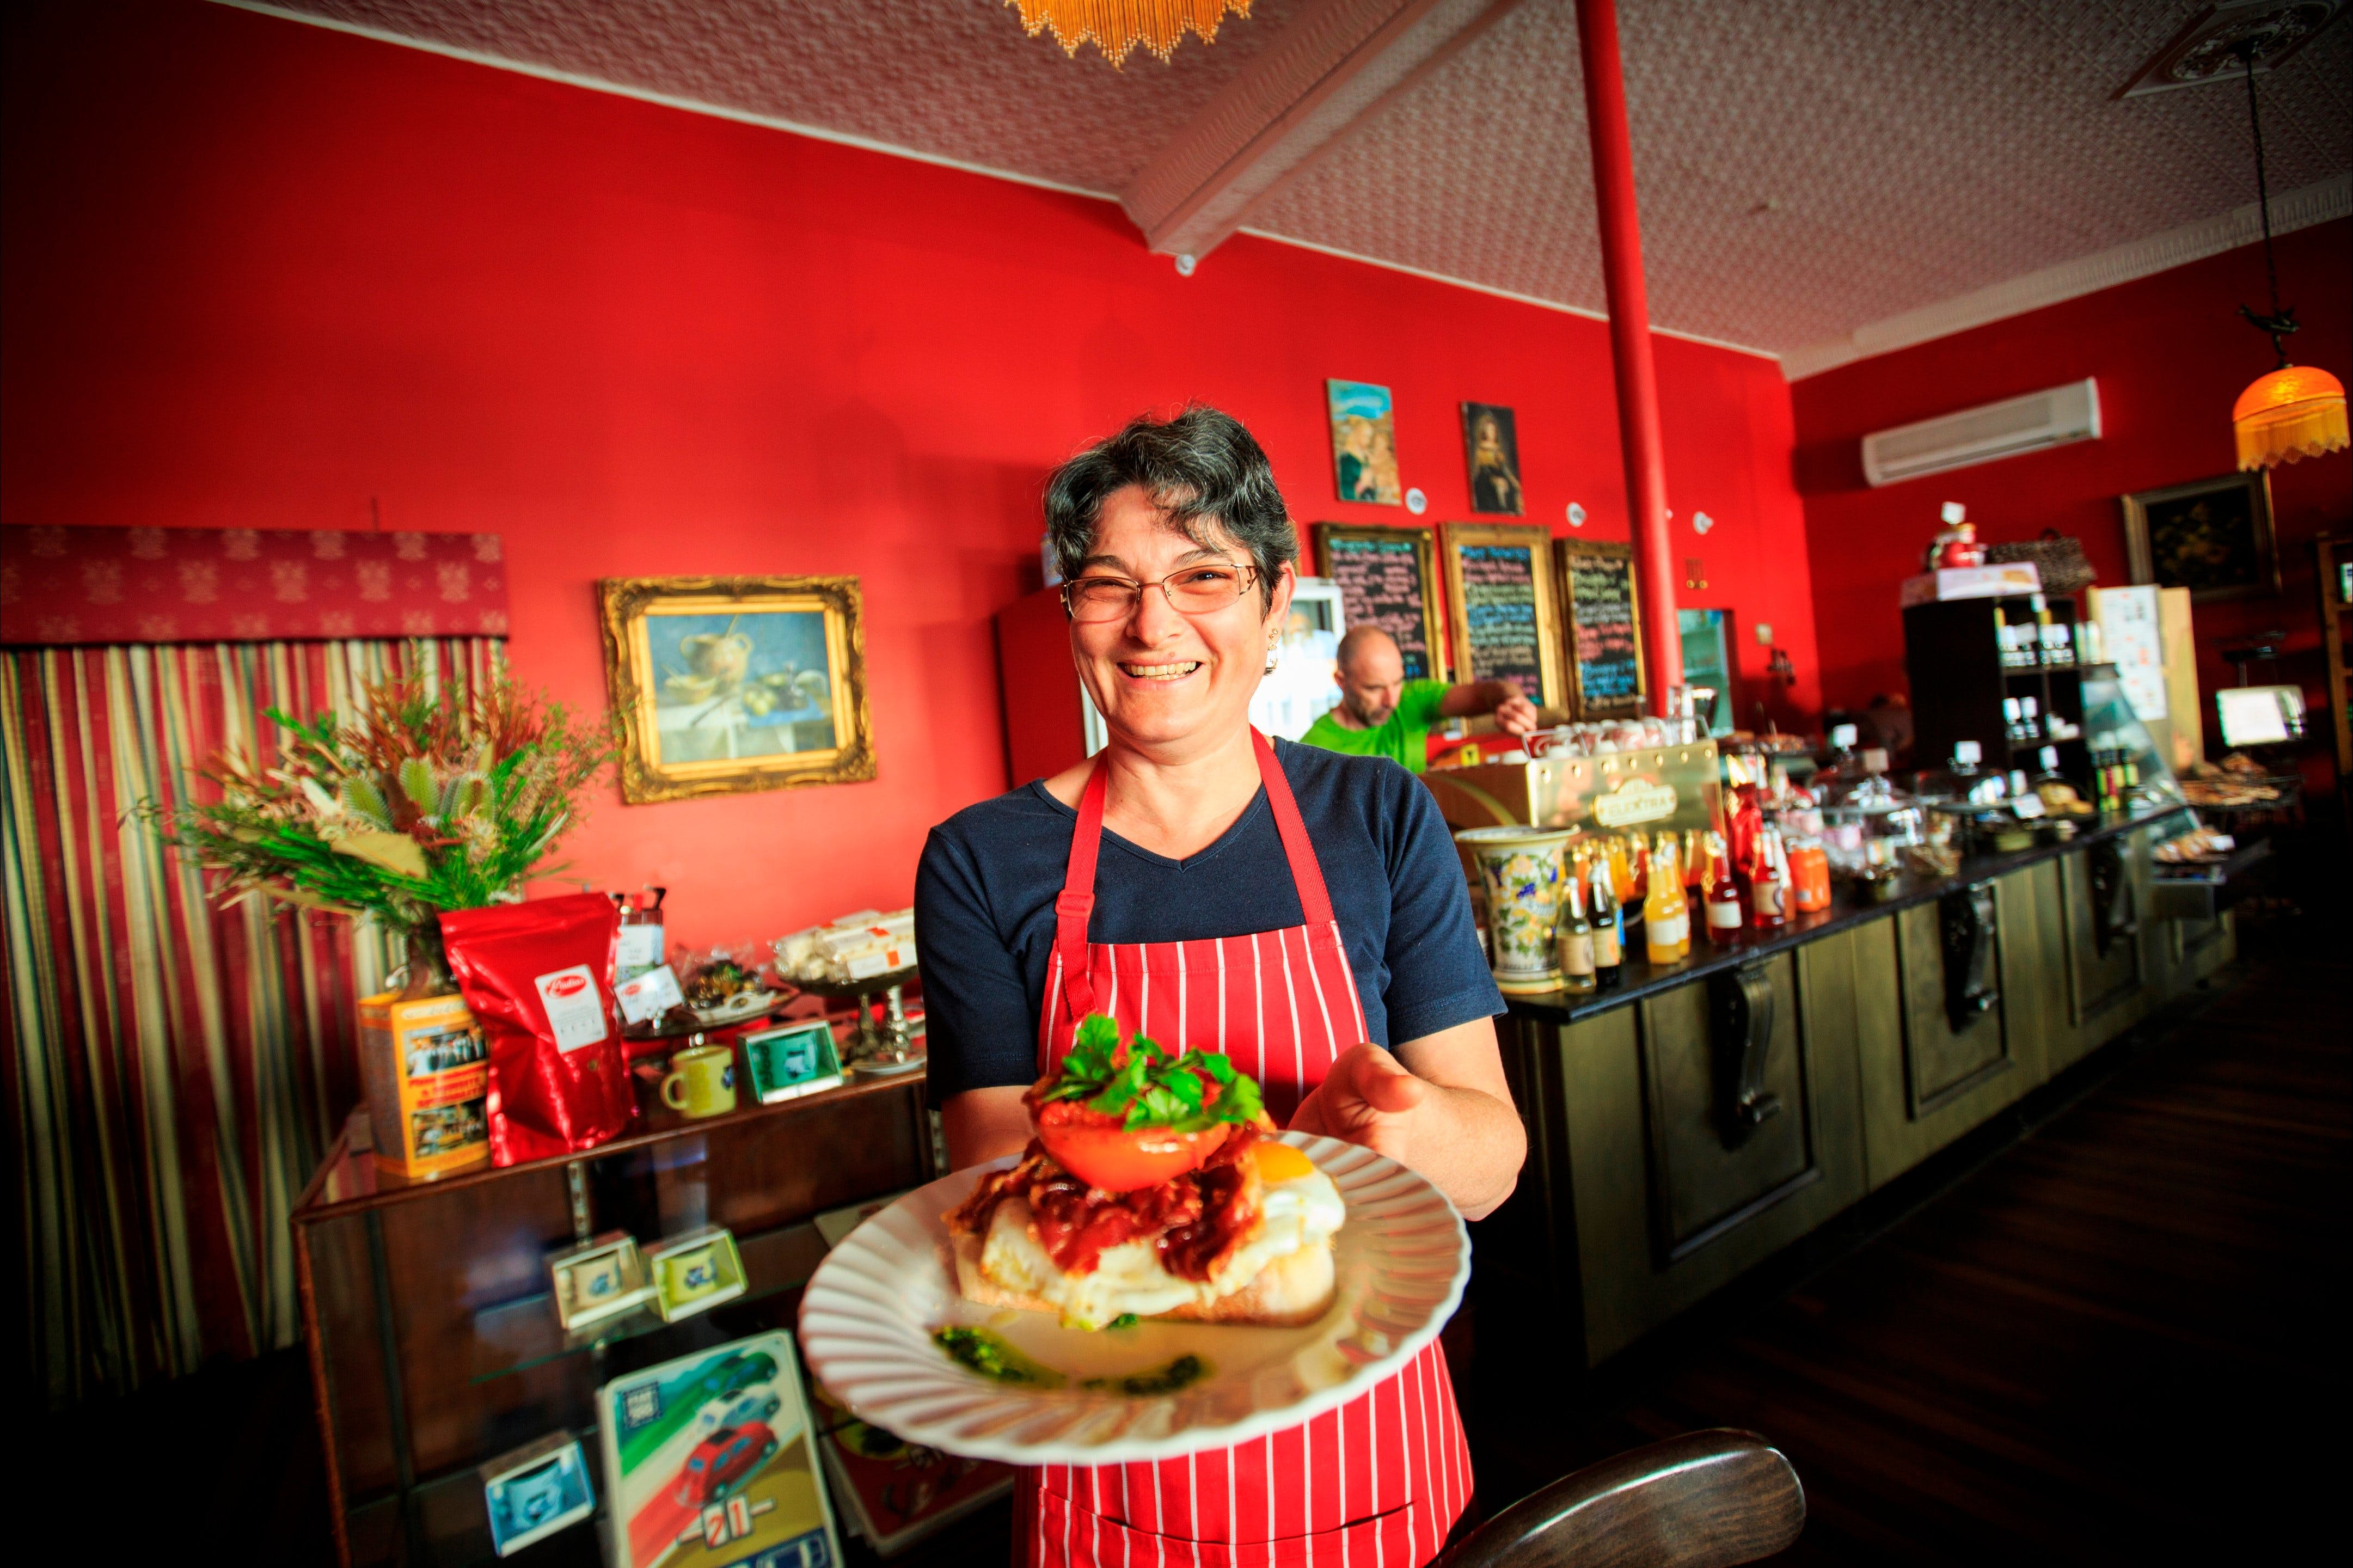 Gympie Region Food Trail - Attractions